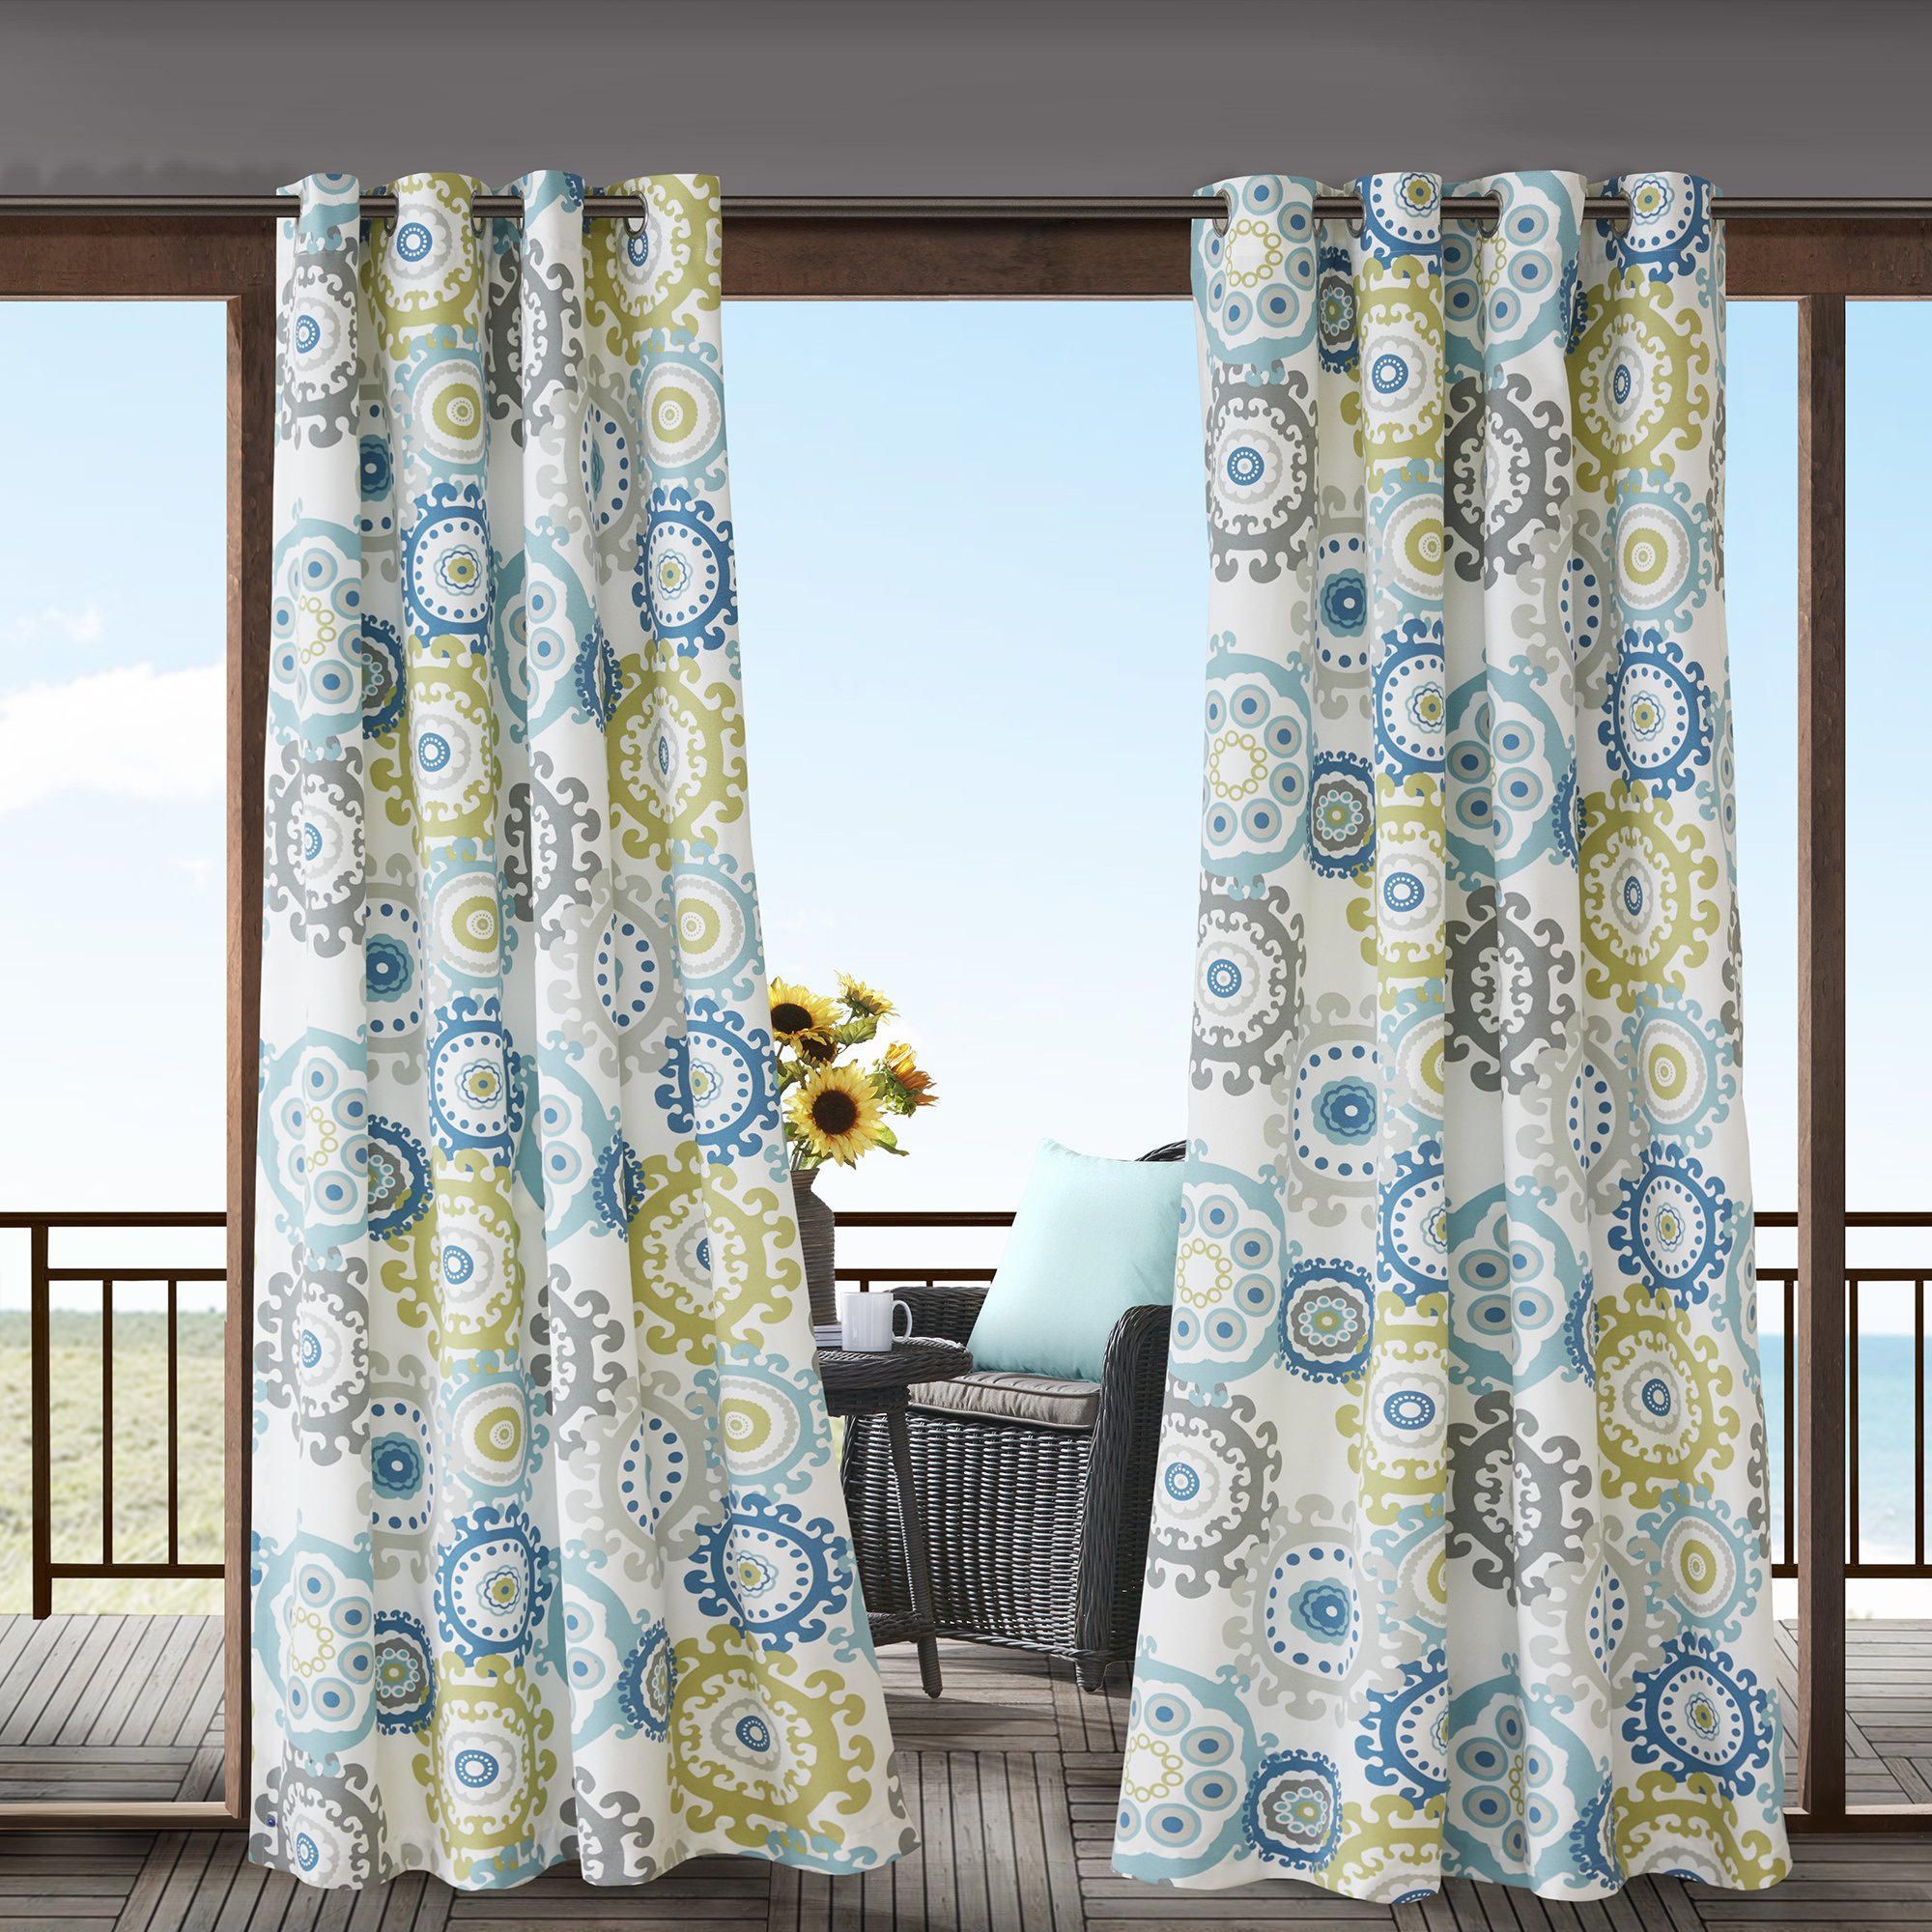 1 Piece Blue Medallion Gazebo Curtain Panel 95 Inch, Gold Floral Print Outdoor Curtain Light Blocking For Patio Porch, Water Resistant Indoor/outdoor Drape Pergola Garden Sunroom Grommet, Polyester